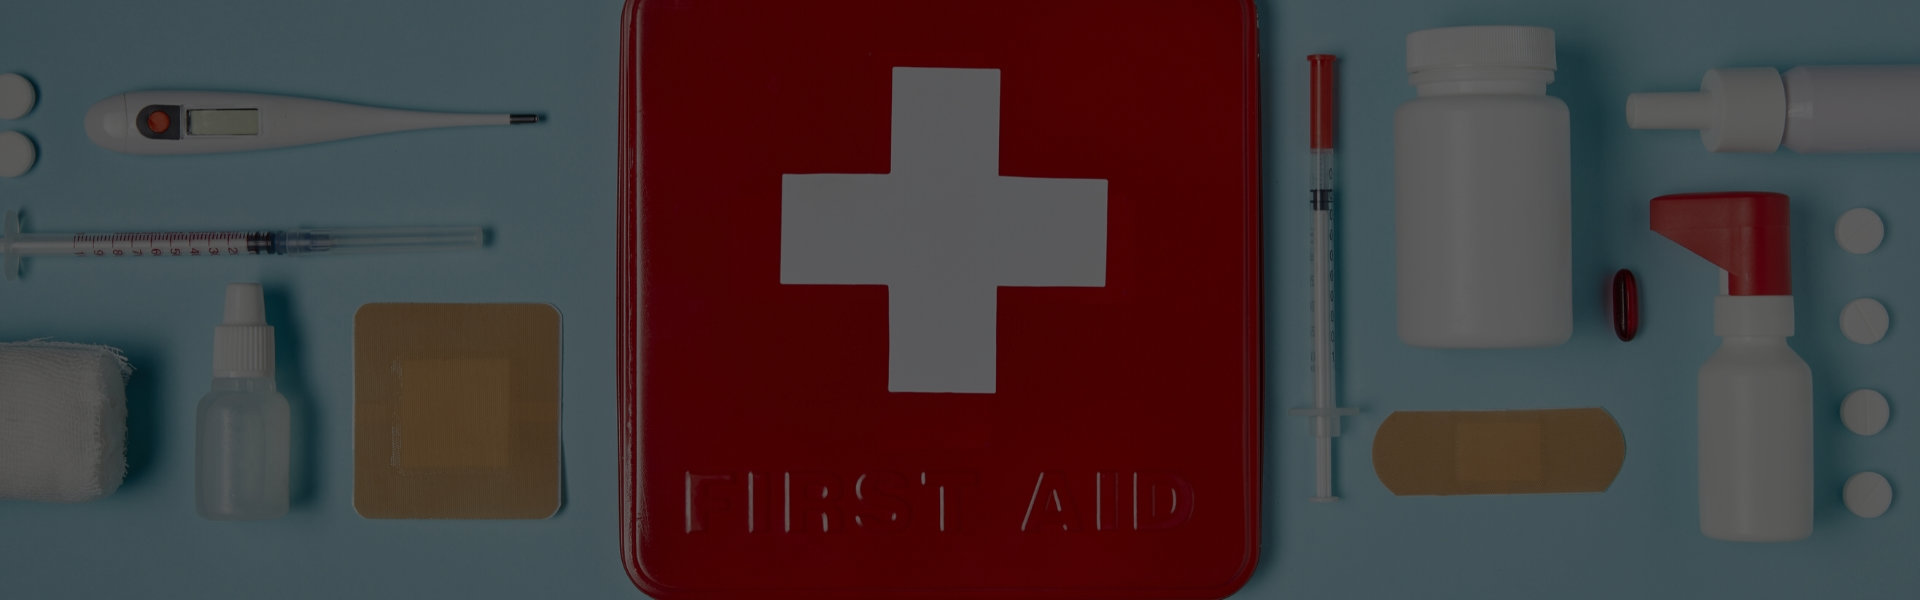 First Aid and Medical Kits